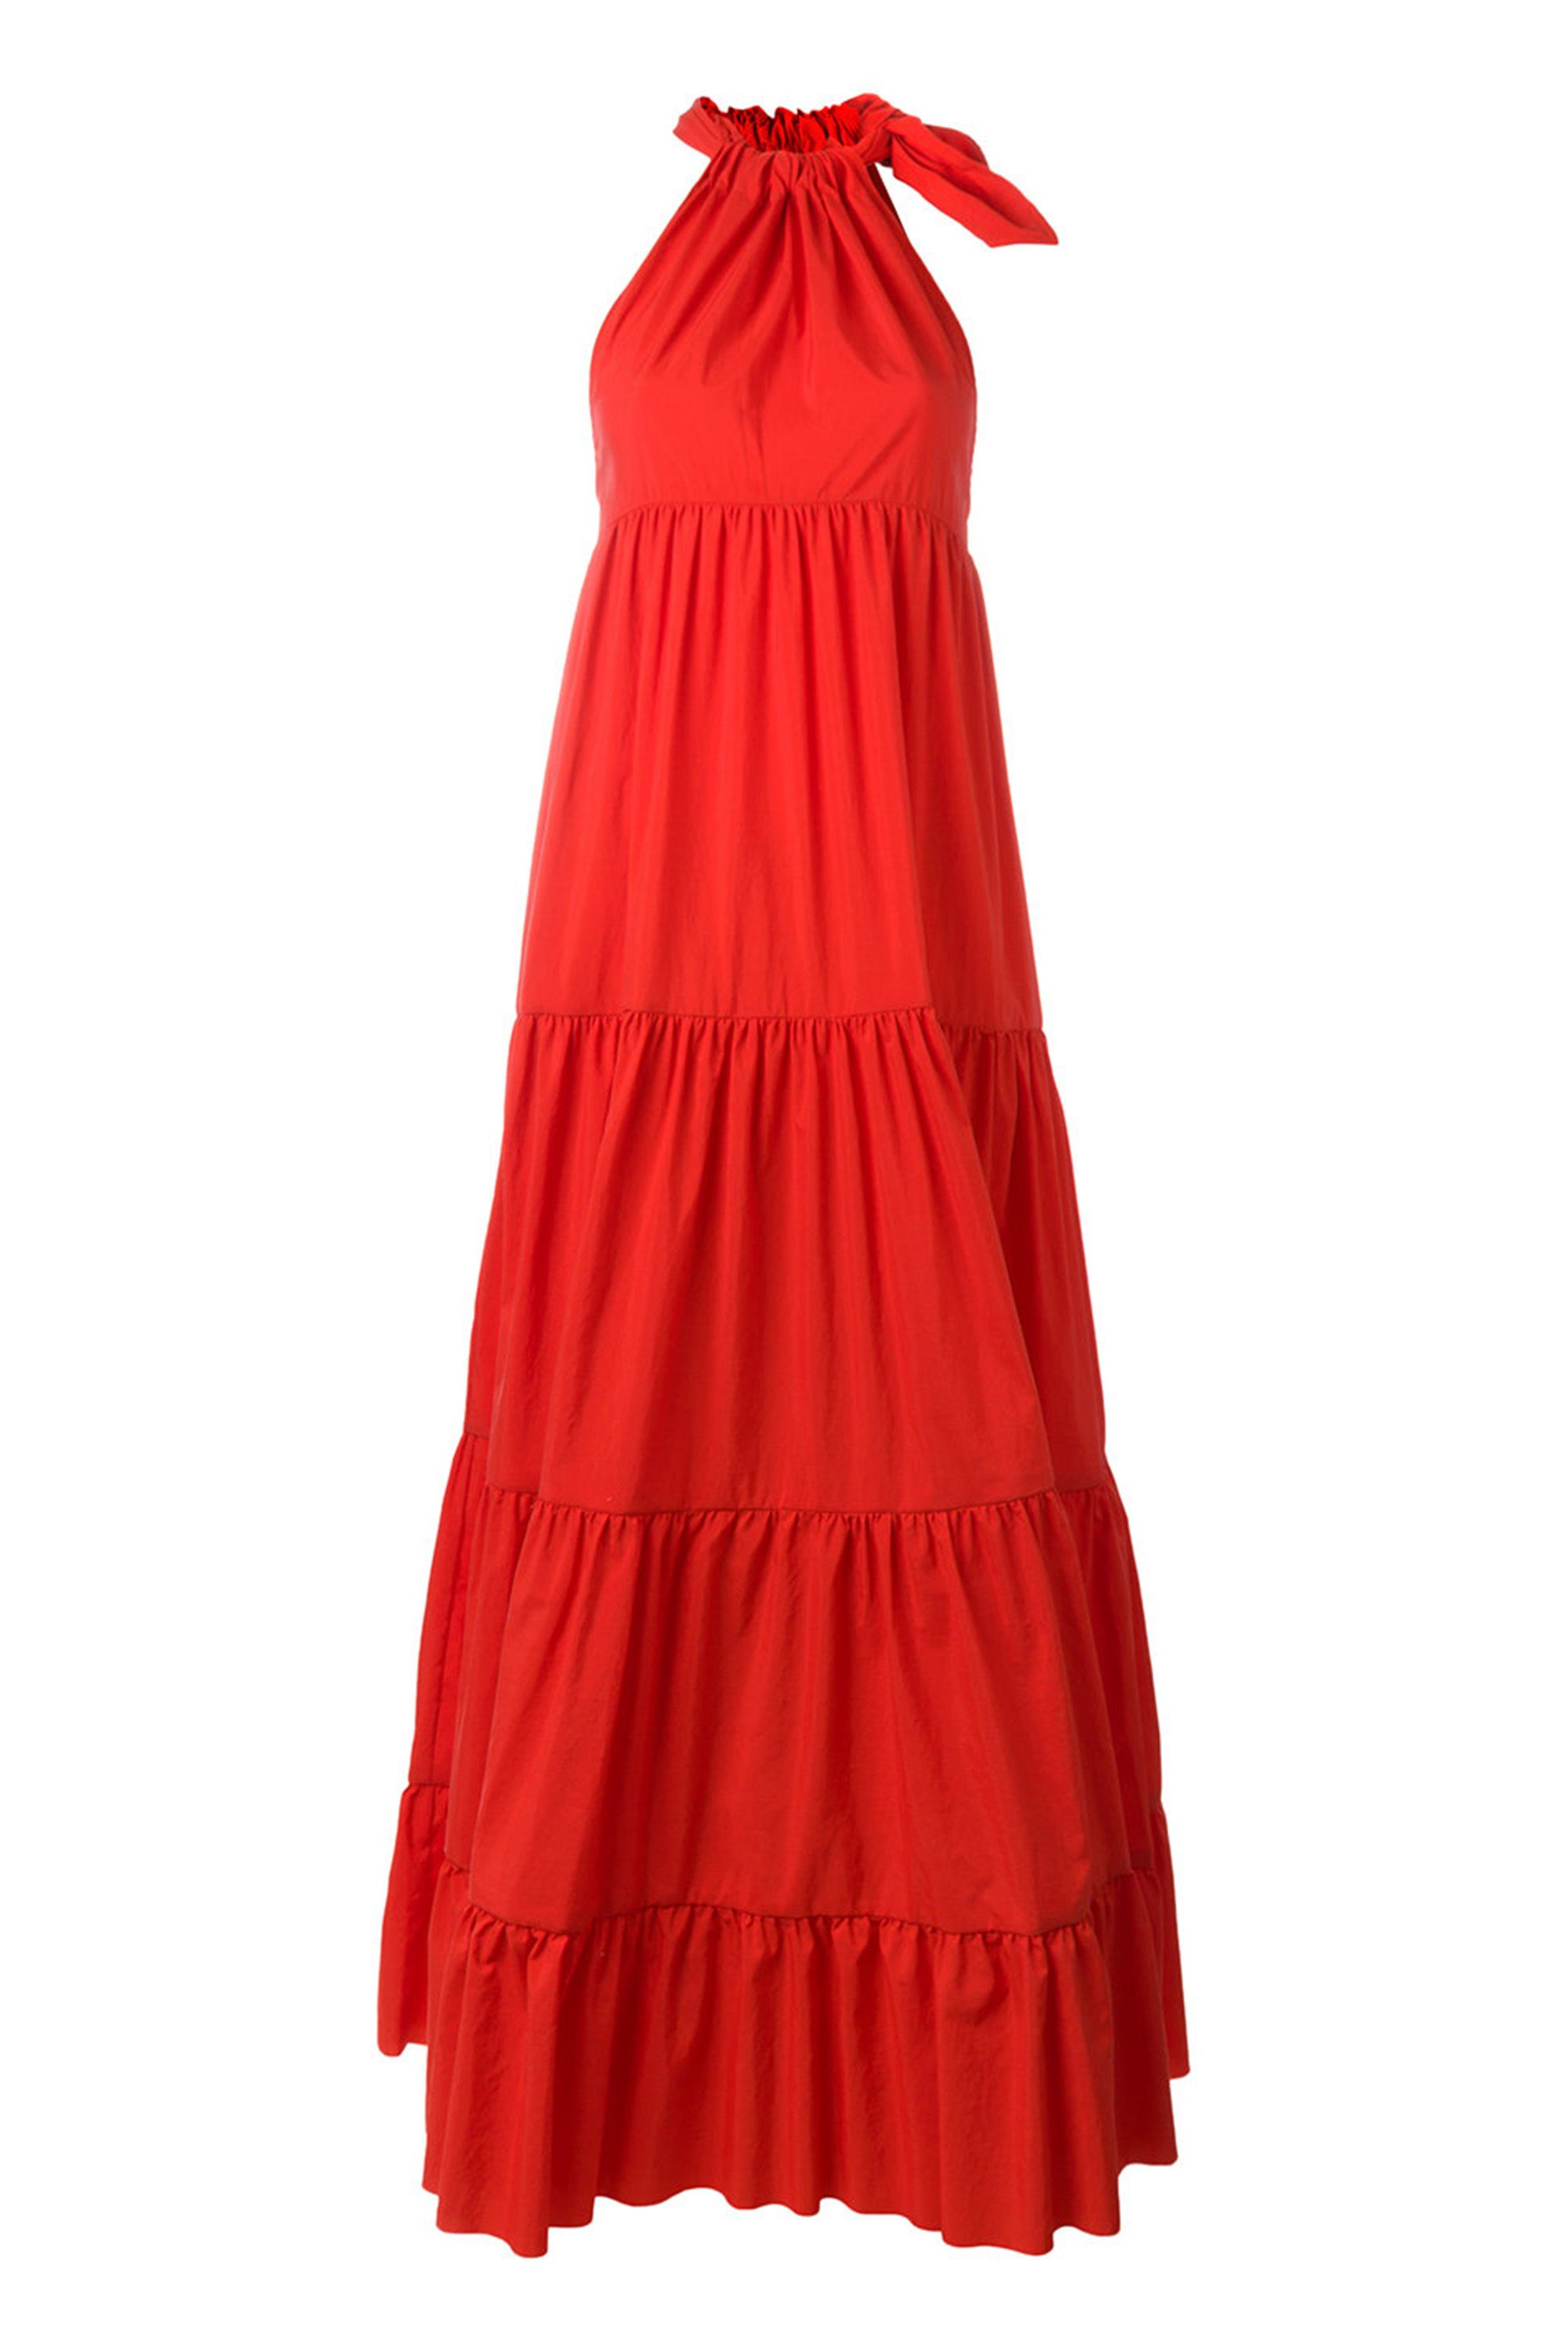 Best affordable wedding guest dresses   Wedding Guest Dresses You Can Buy On Sale  Hot Mess Dress